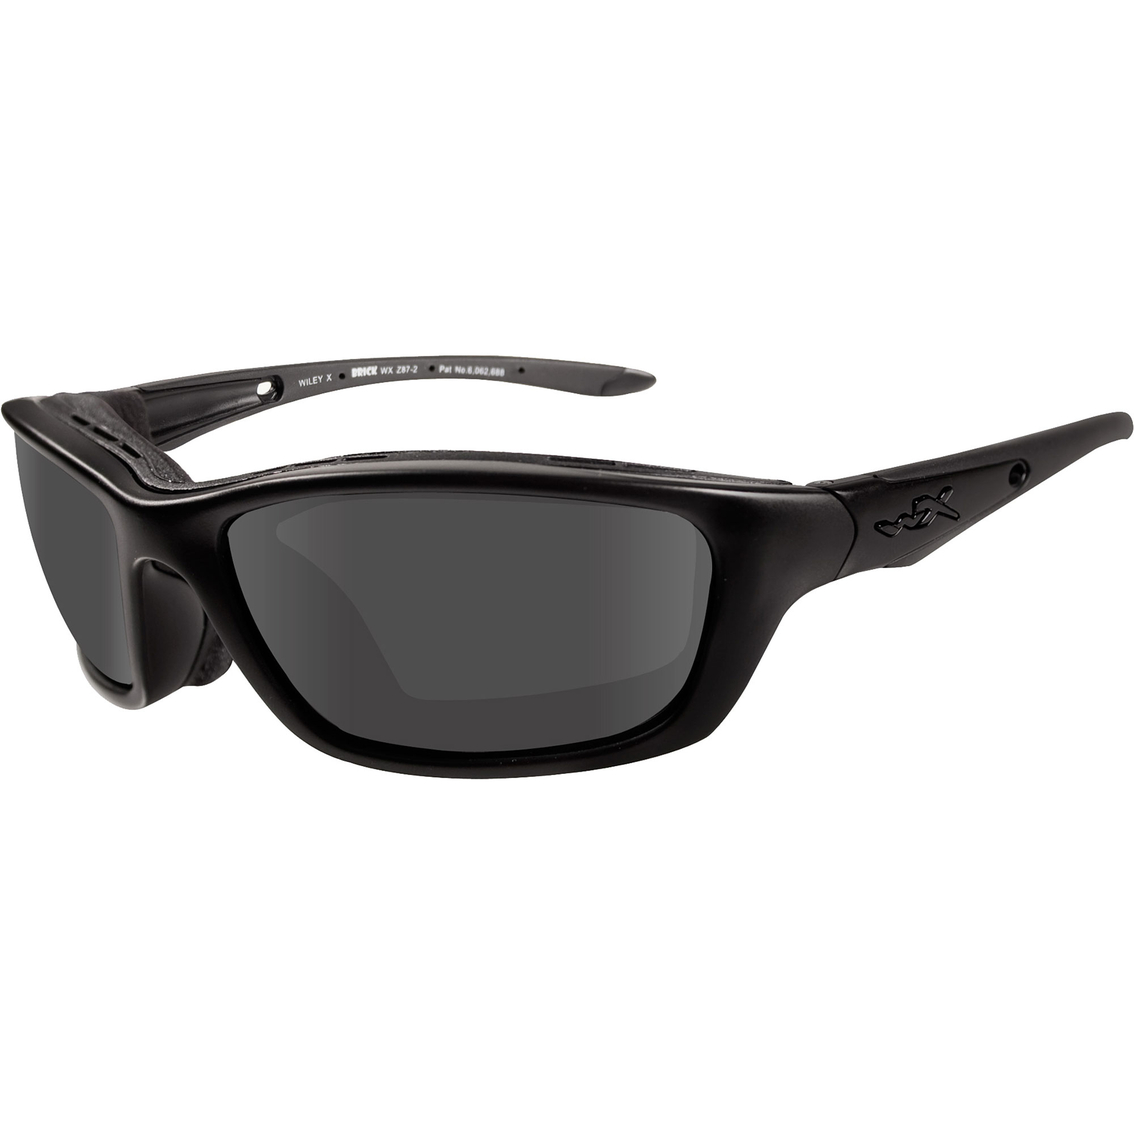 99870af695 Wiley X Black Ops Brick Sunglasses